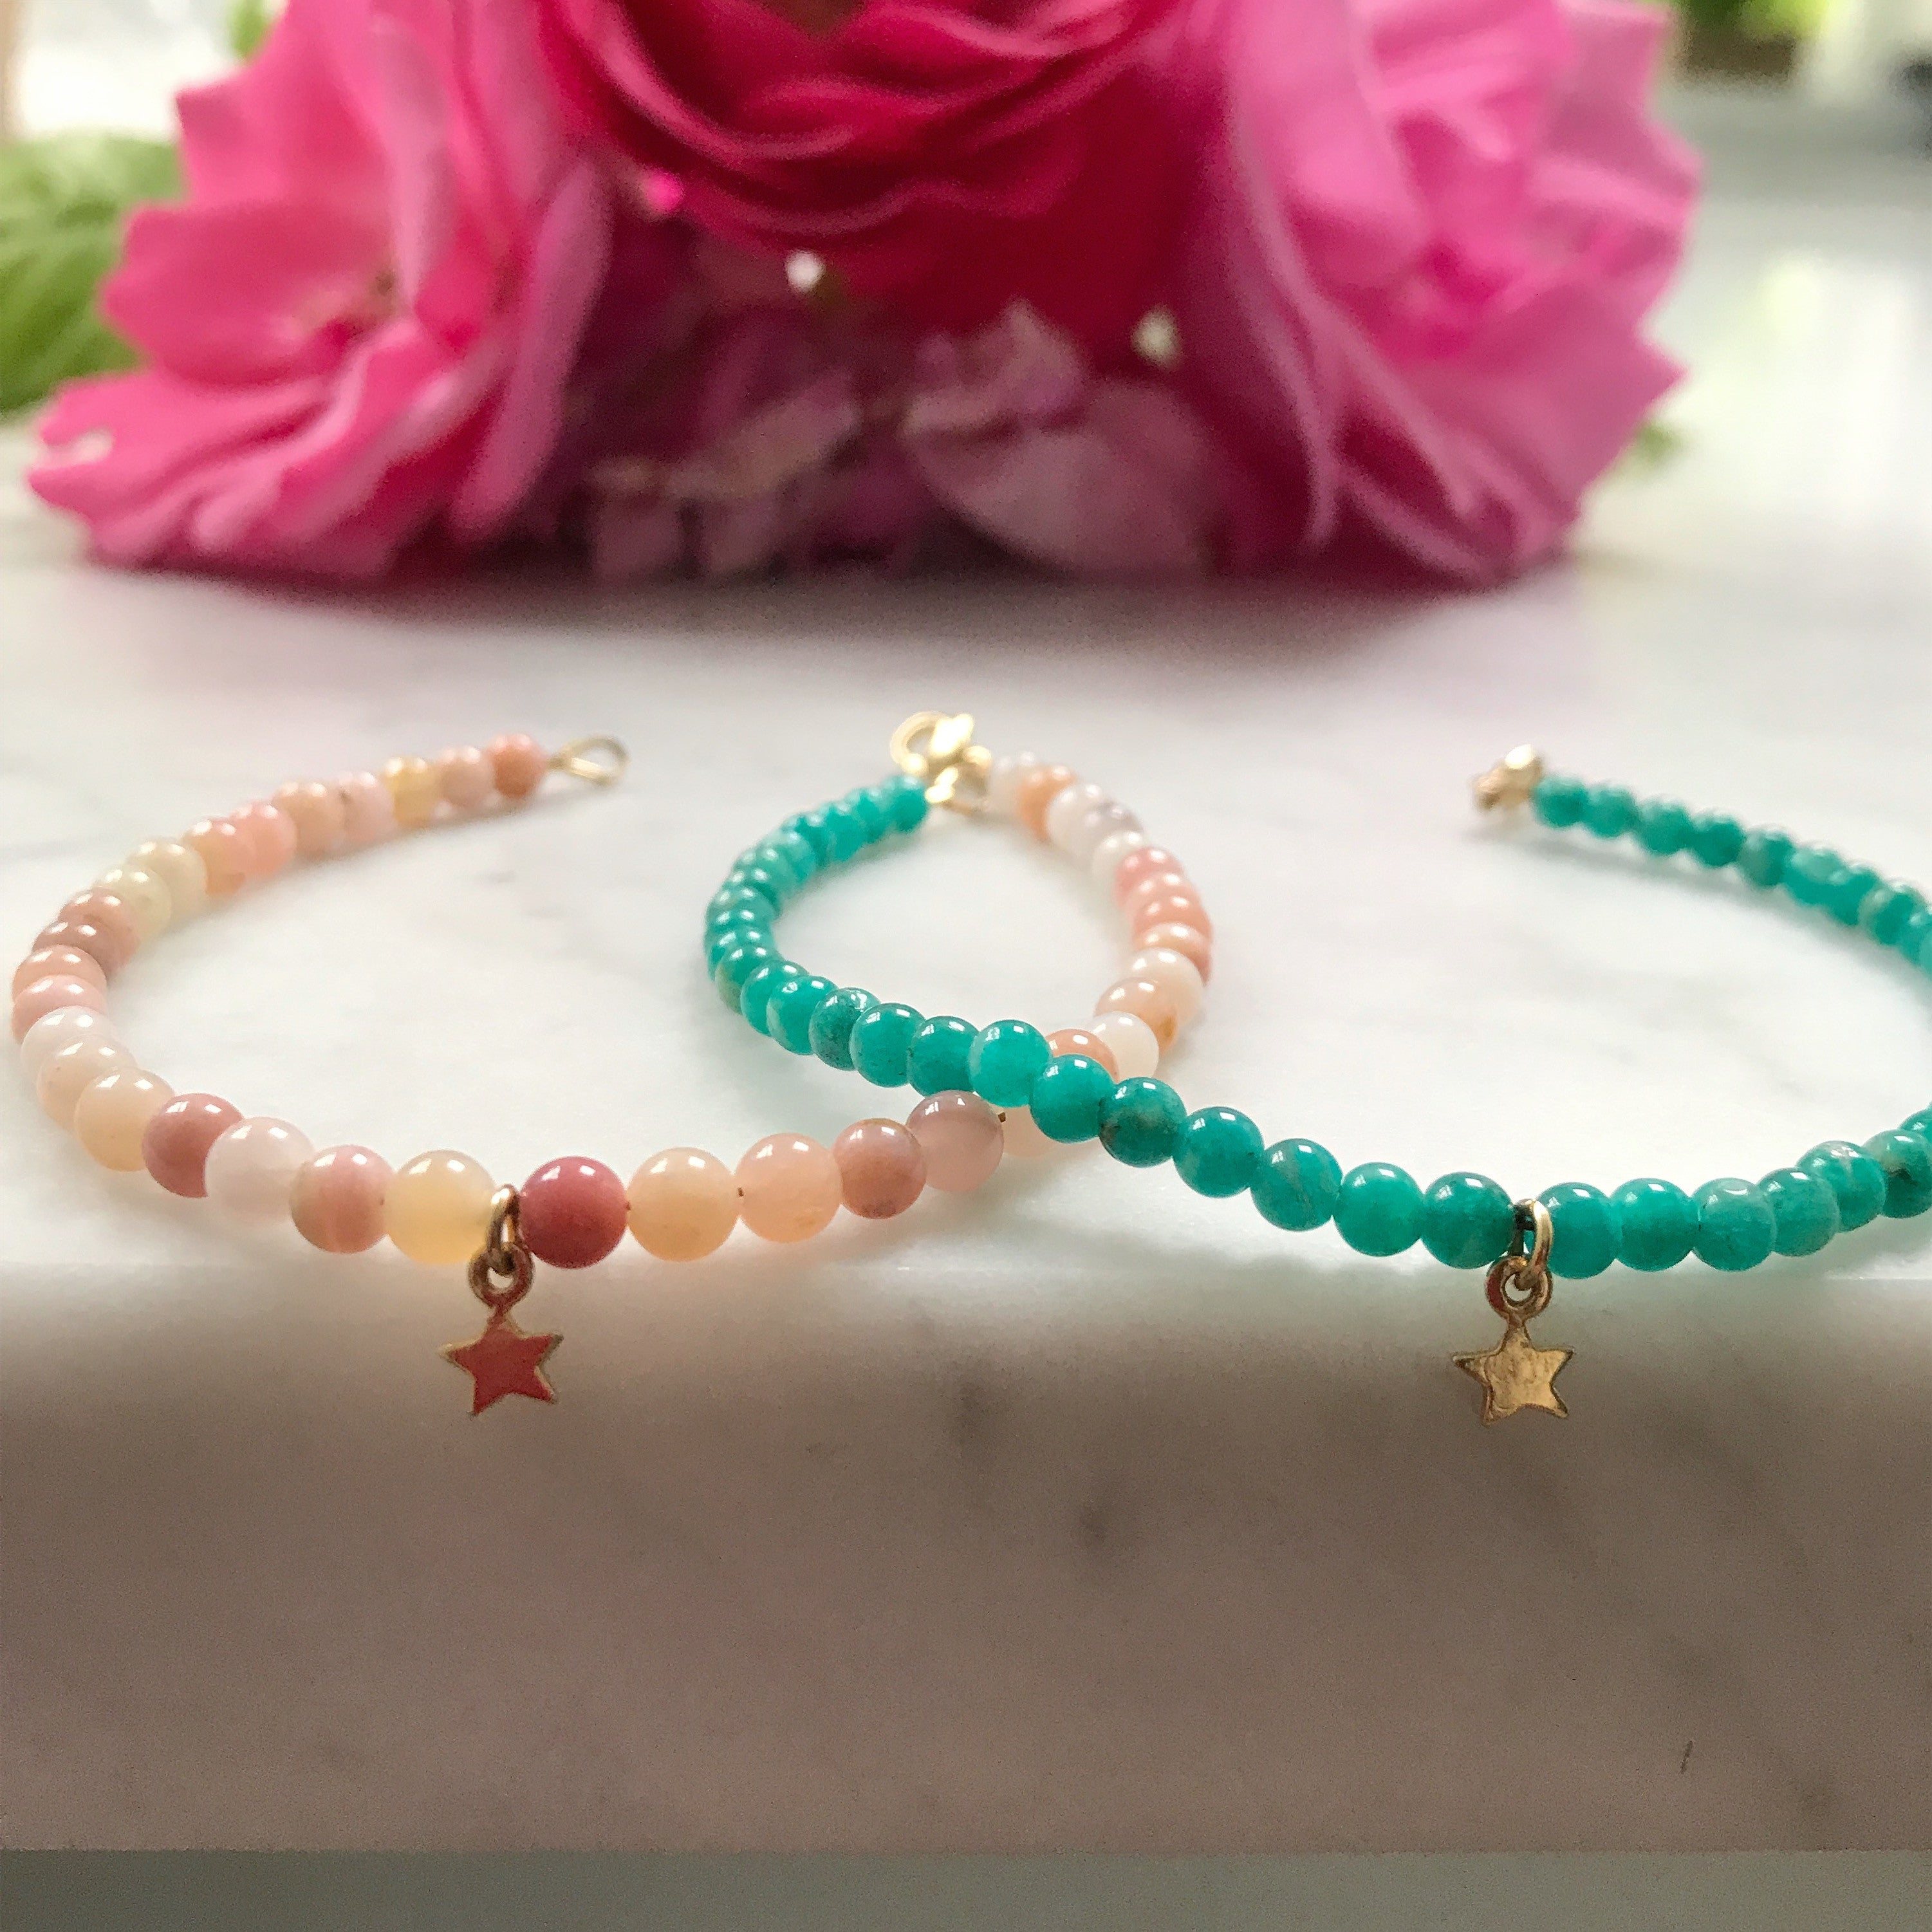 Star Keepsake Bracelet - Amazonite